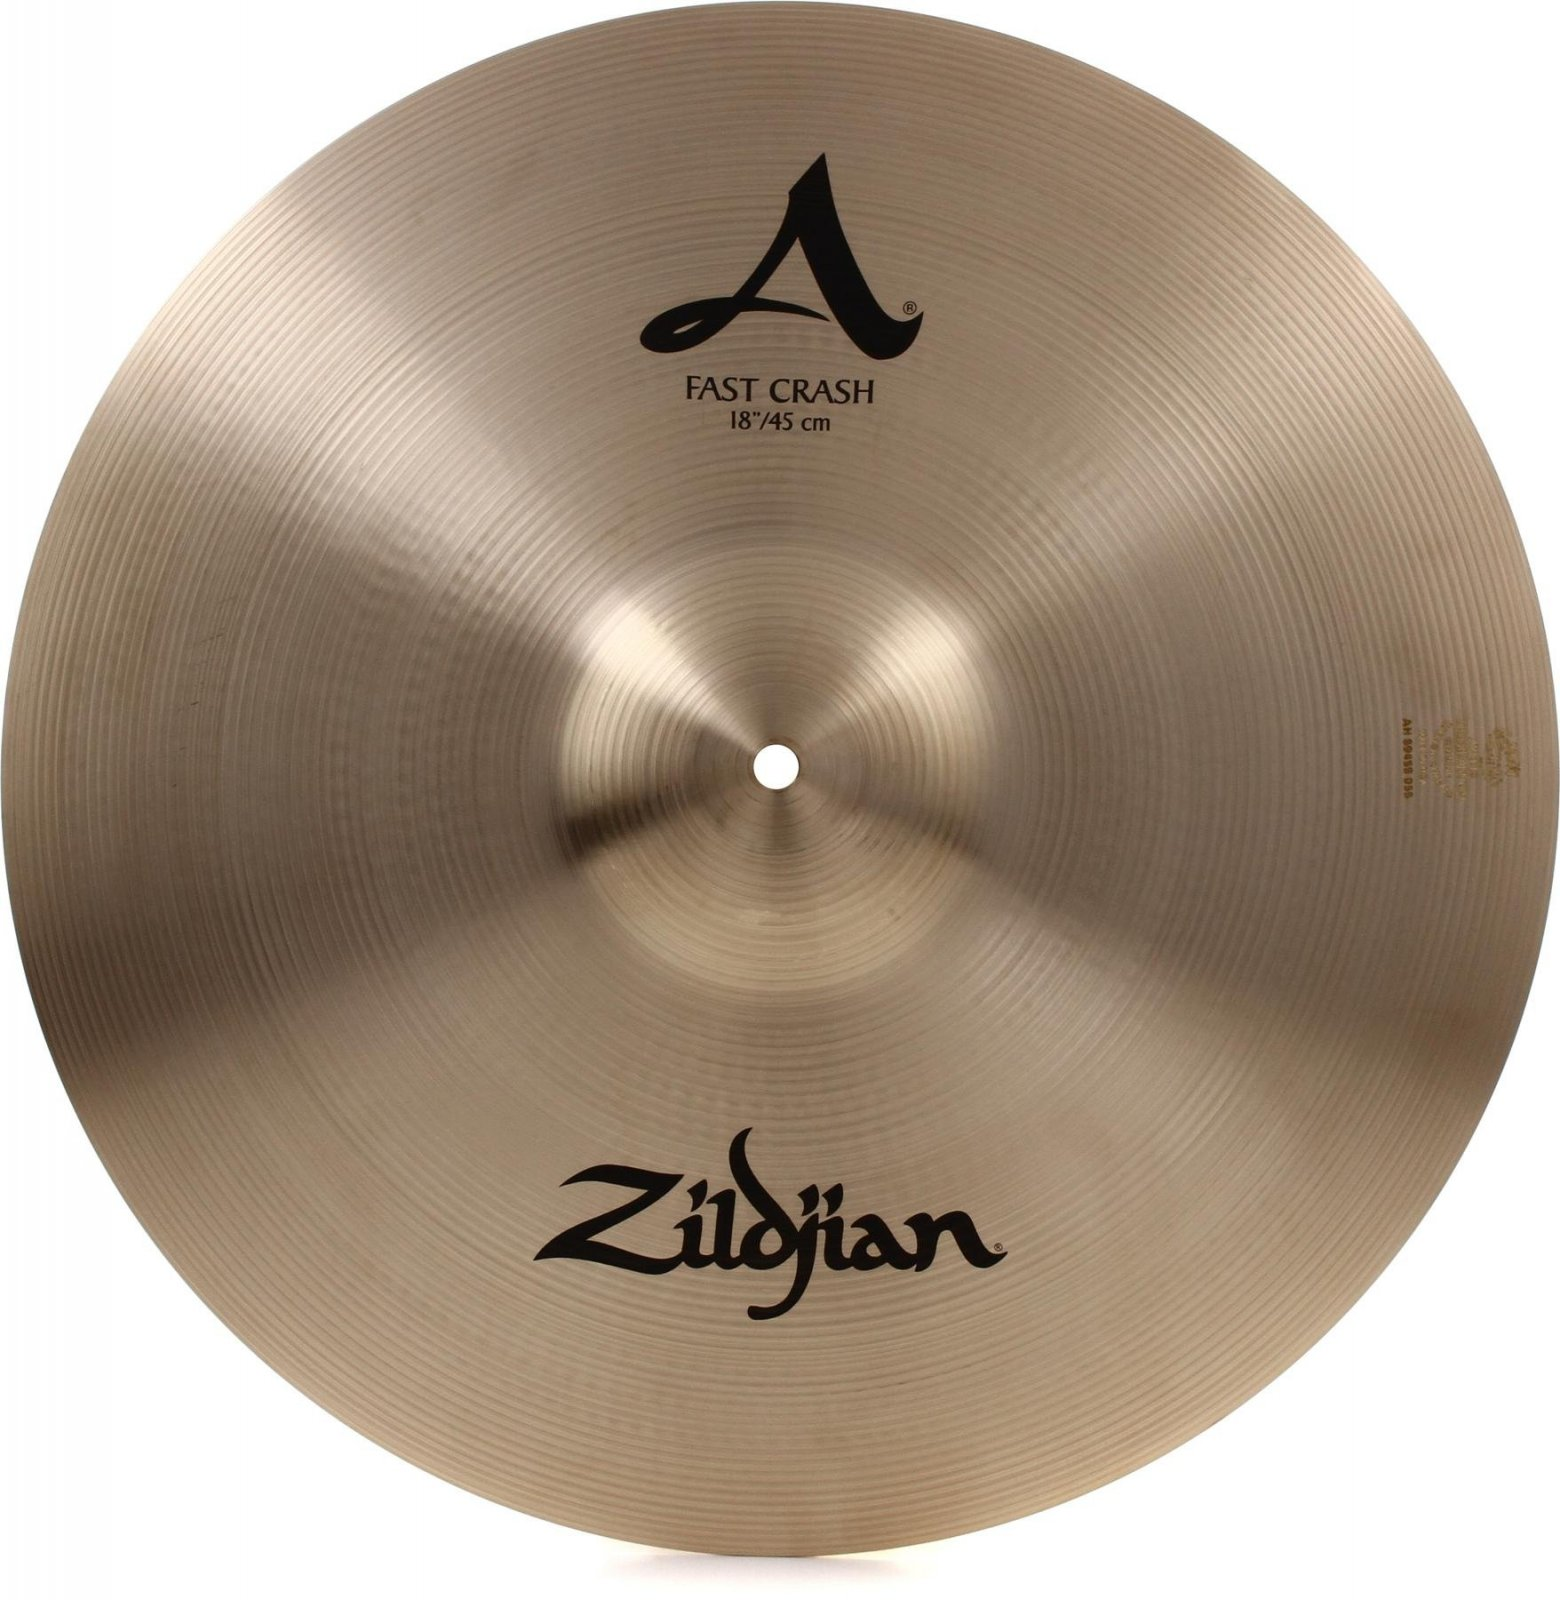 Zildjian A Series 18 Fast Crash